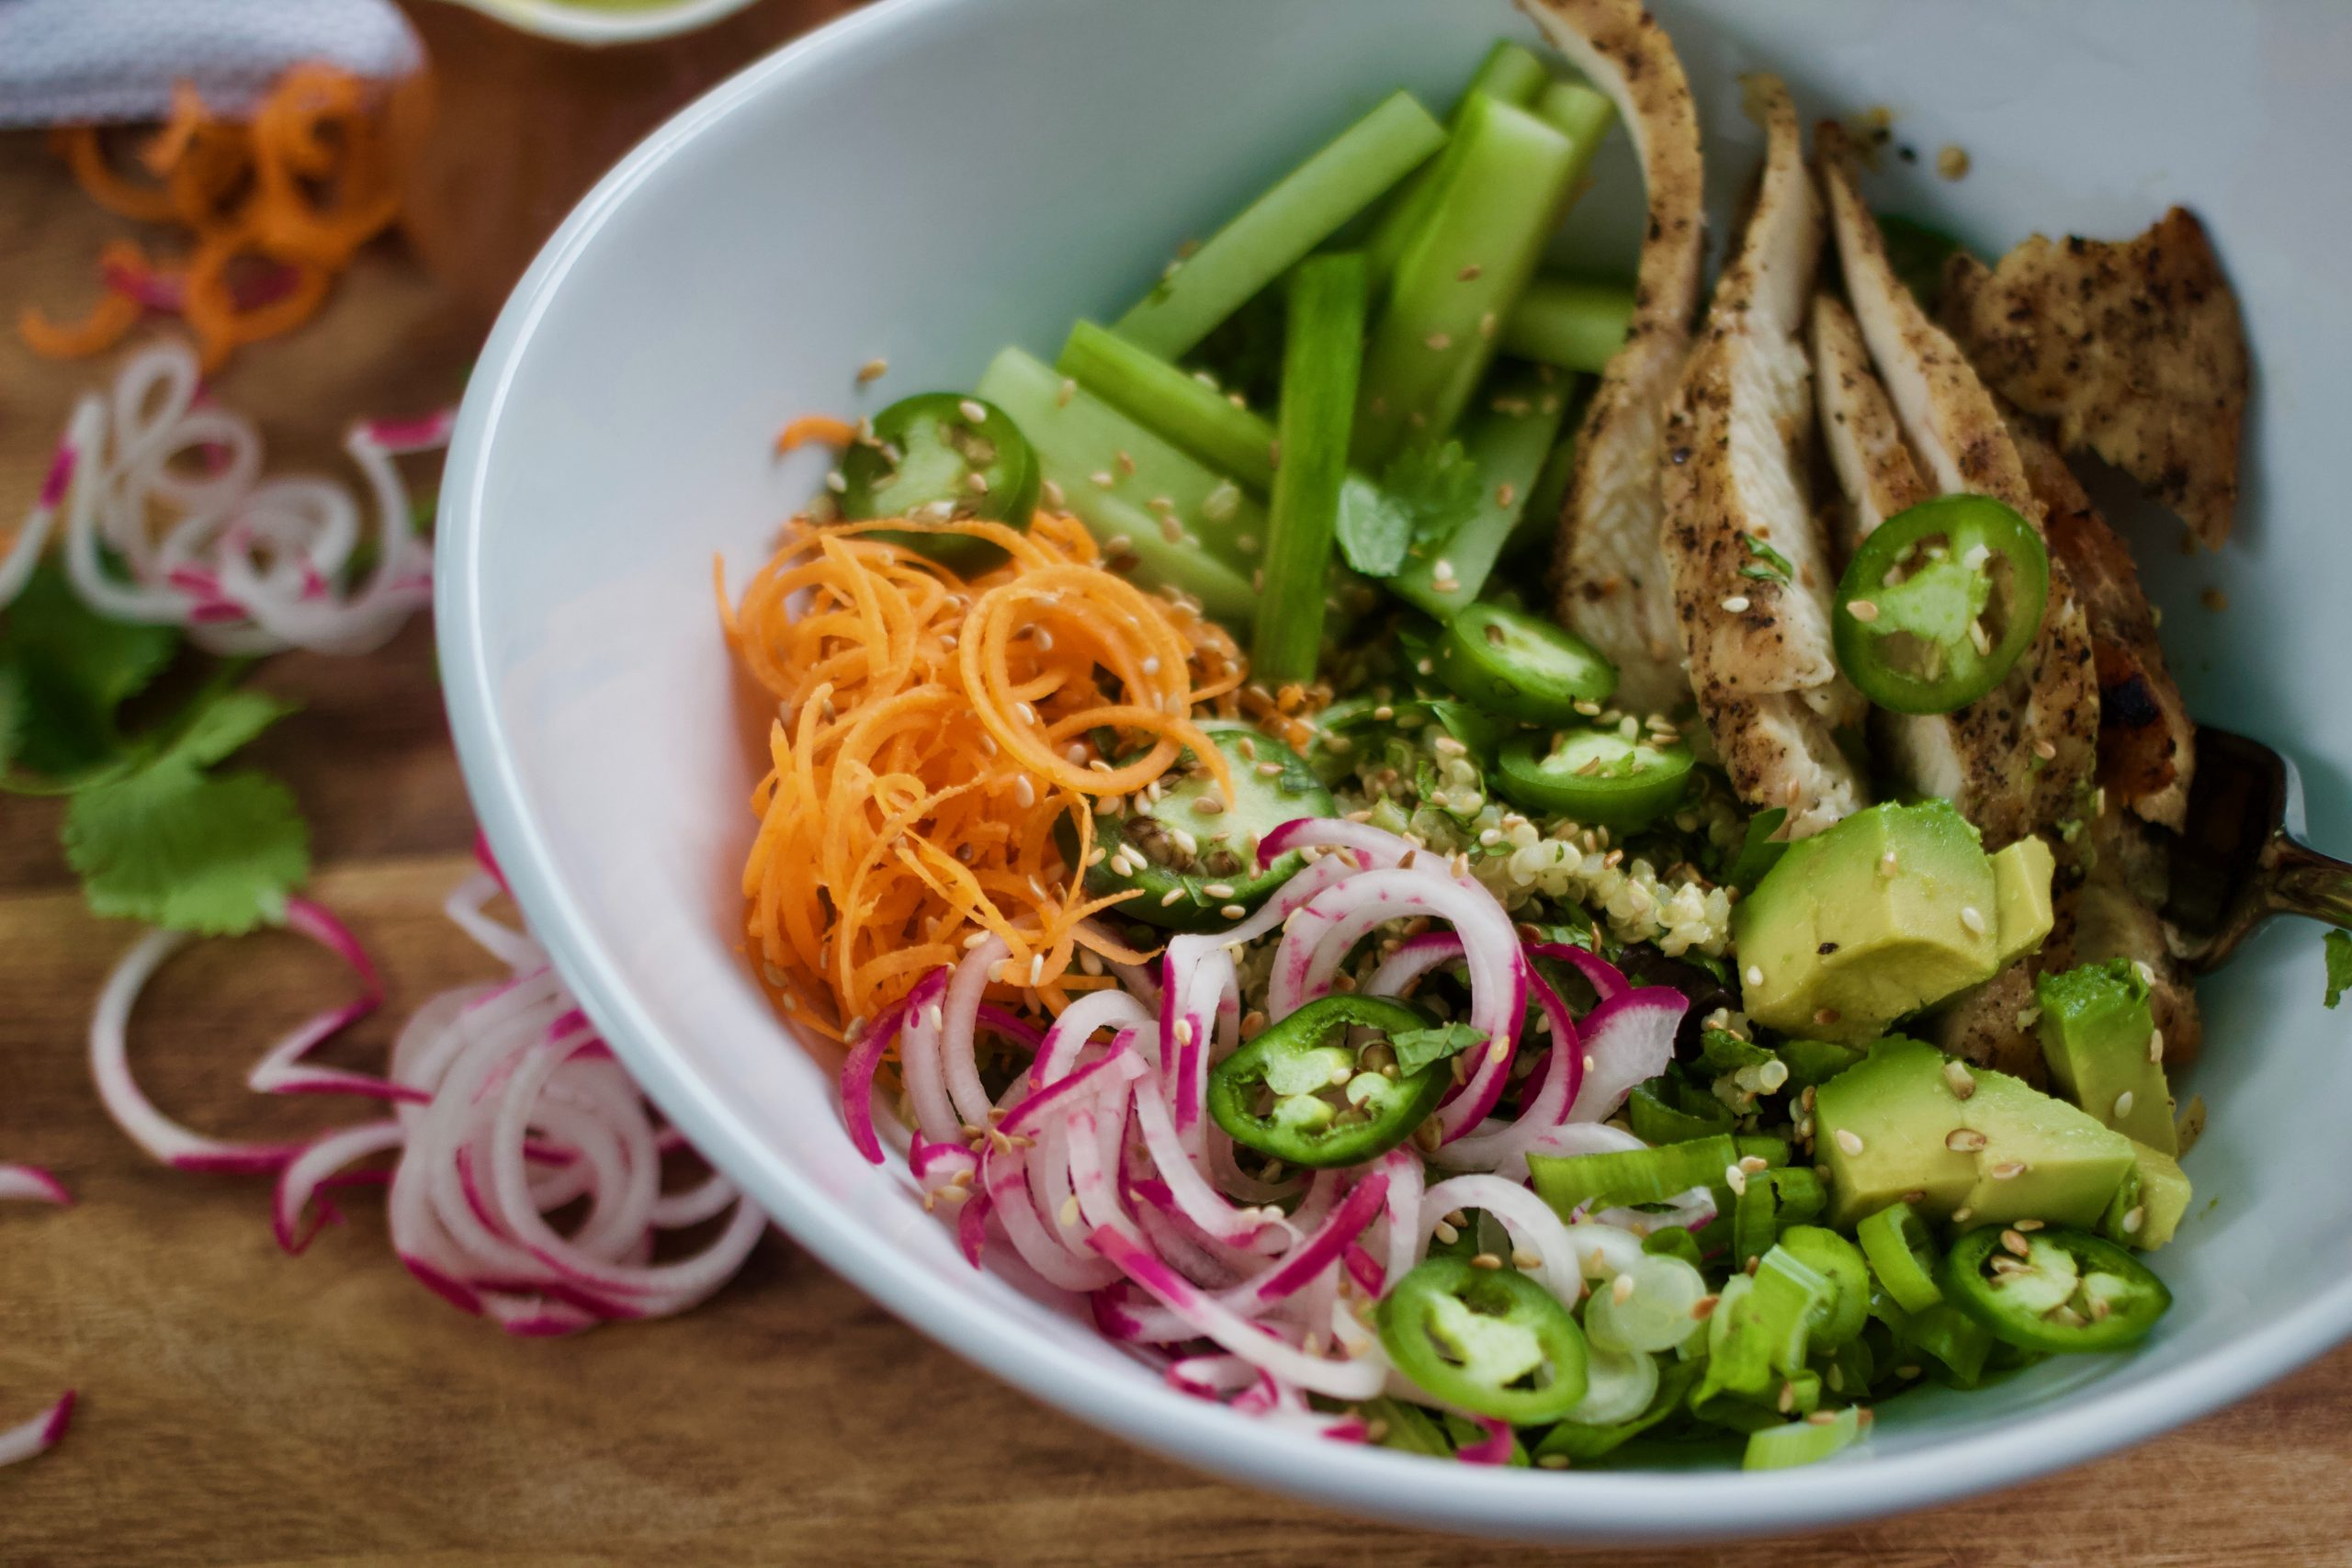 Spicy Banh Mi Chicken & Quinoa Salad